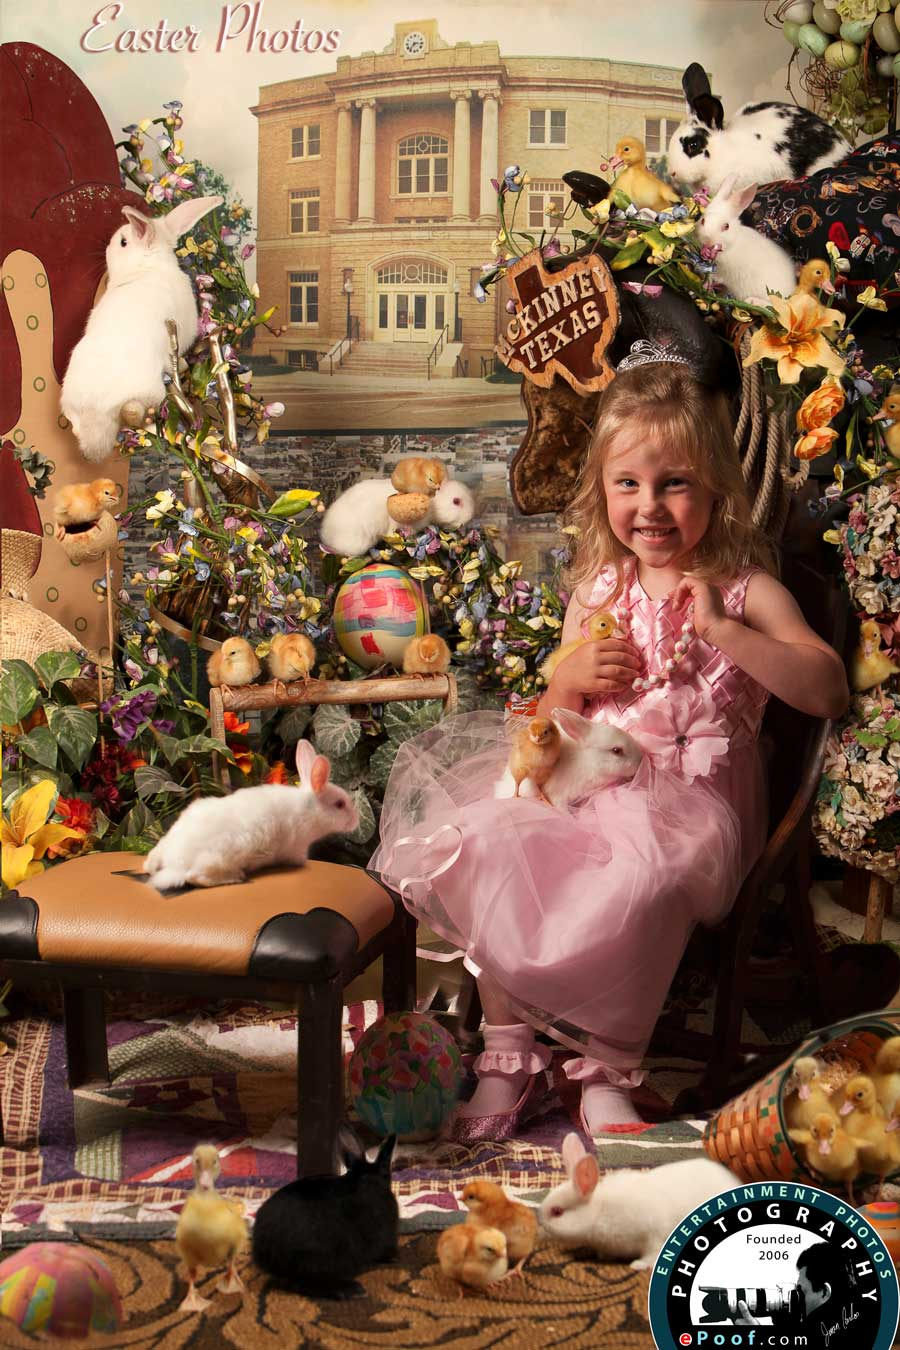 Easter Bunny Photos by juan carlos 2015